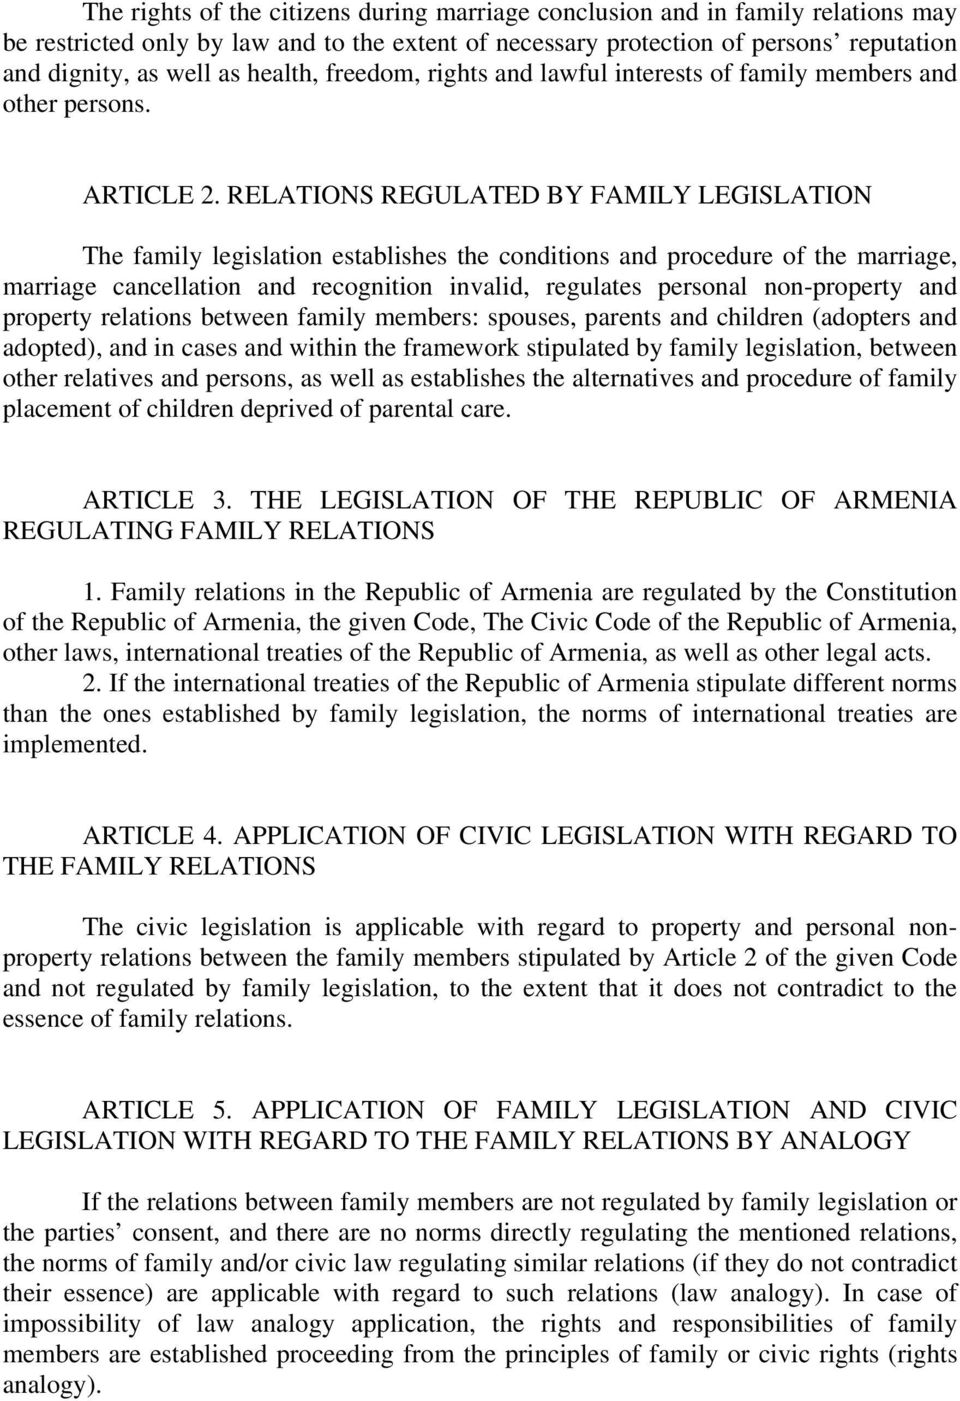 RELATIONS REGULATED BY FAMILY LEGISLATION The family legislation establishes the conditions and procedure of the marriage, marriage cancellation and recognition invalid, regulates personal